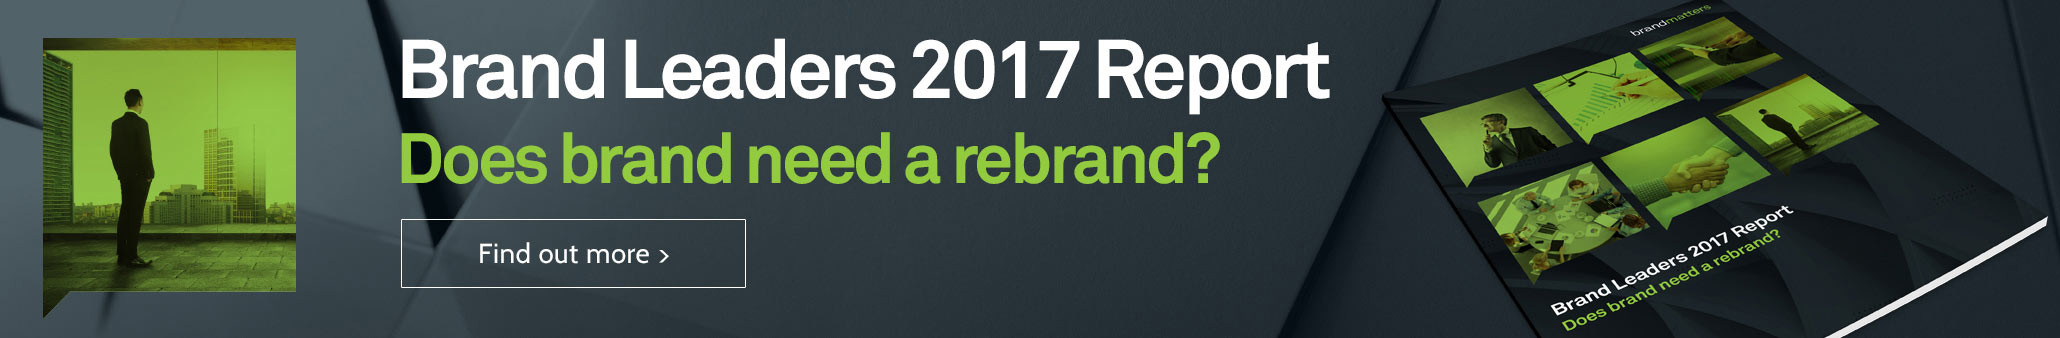 Brand Leaders 2017 Report Banner